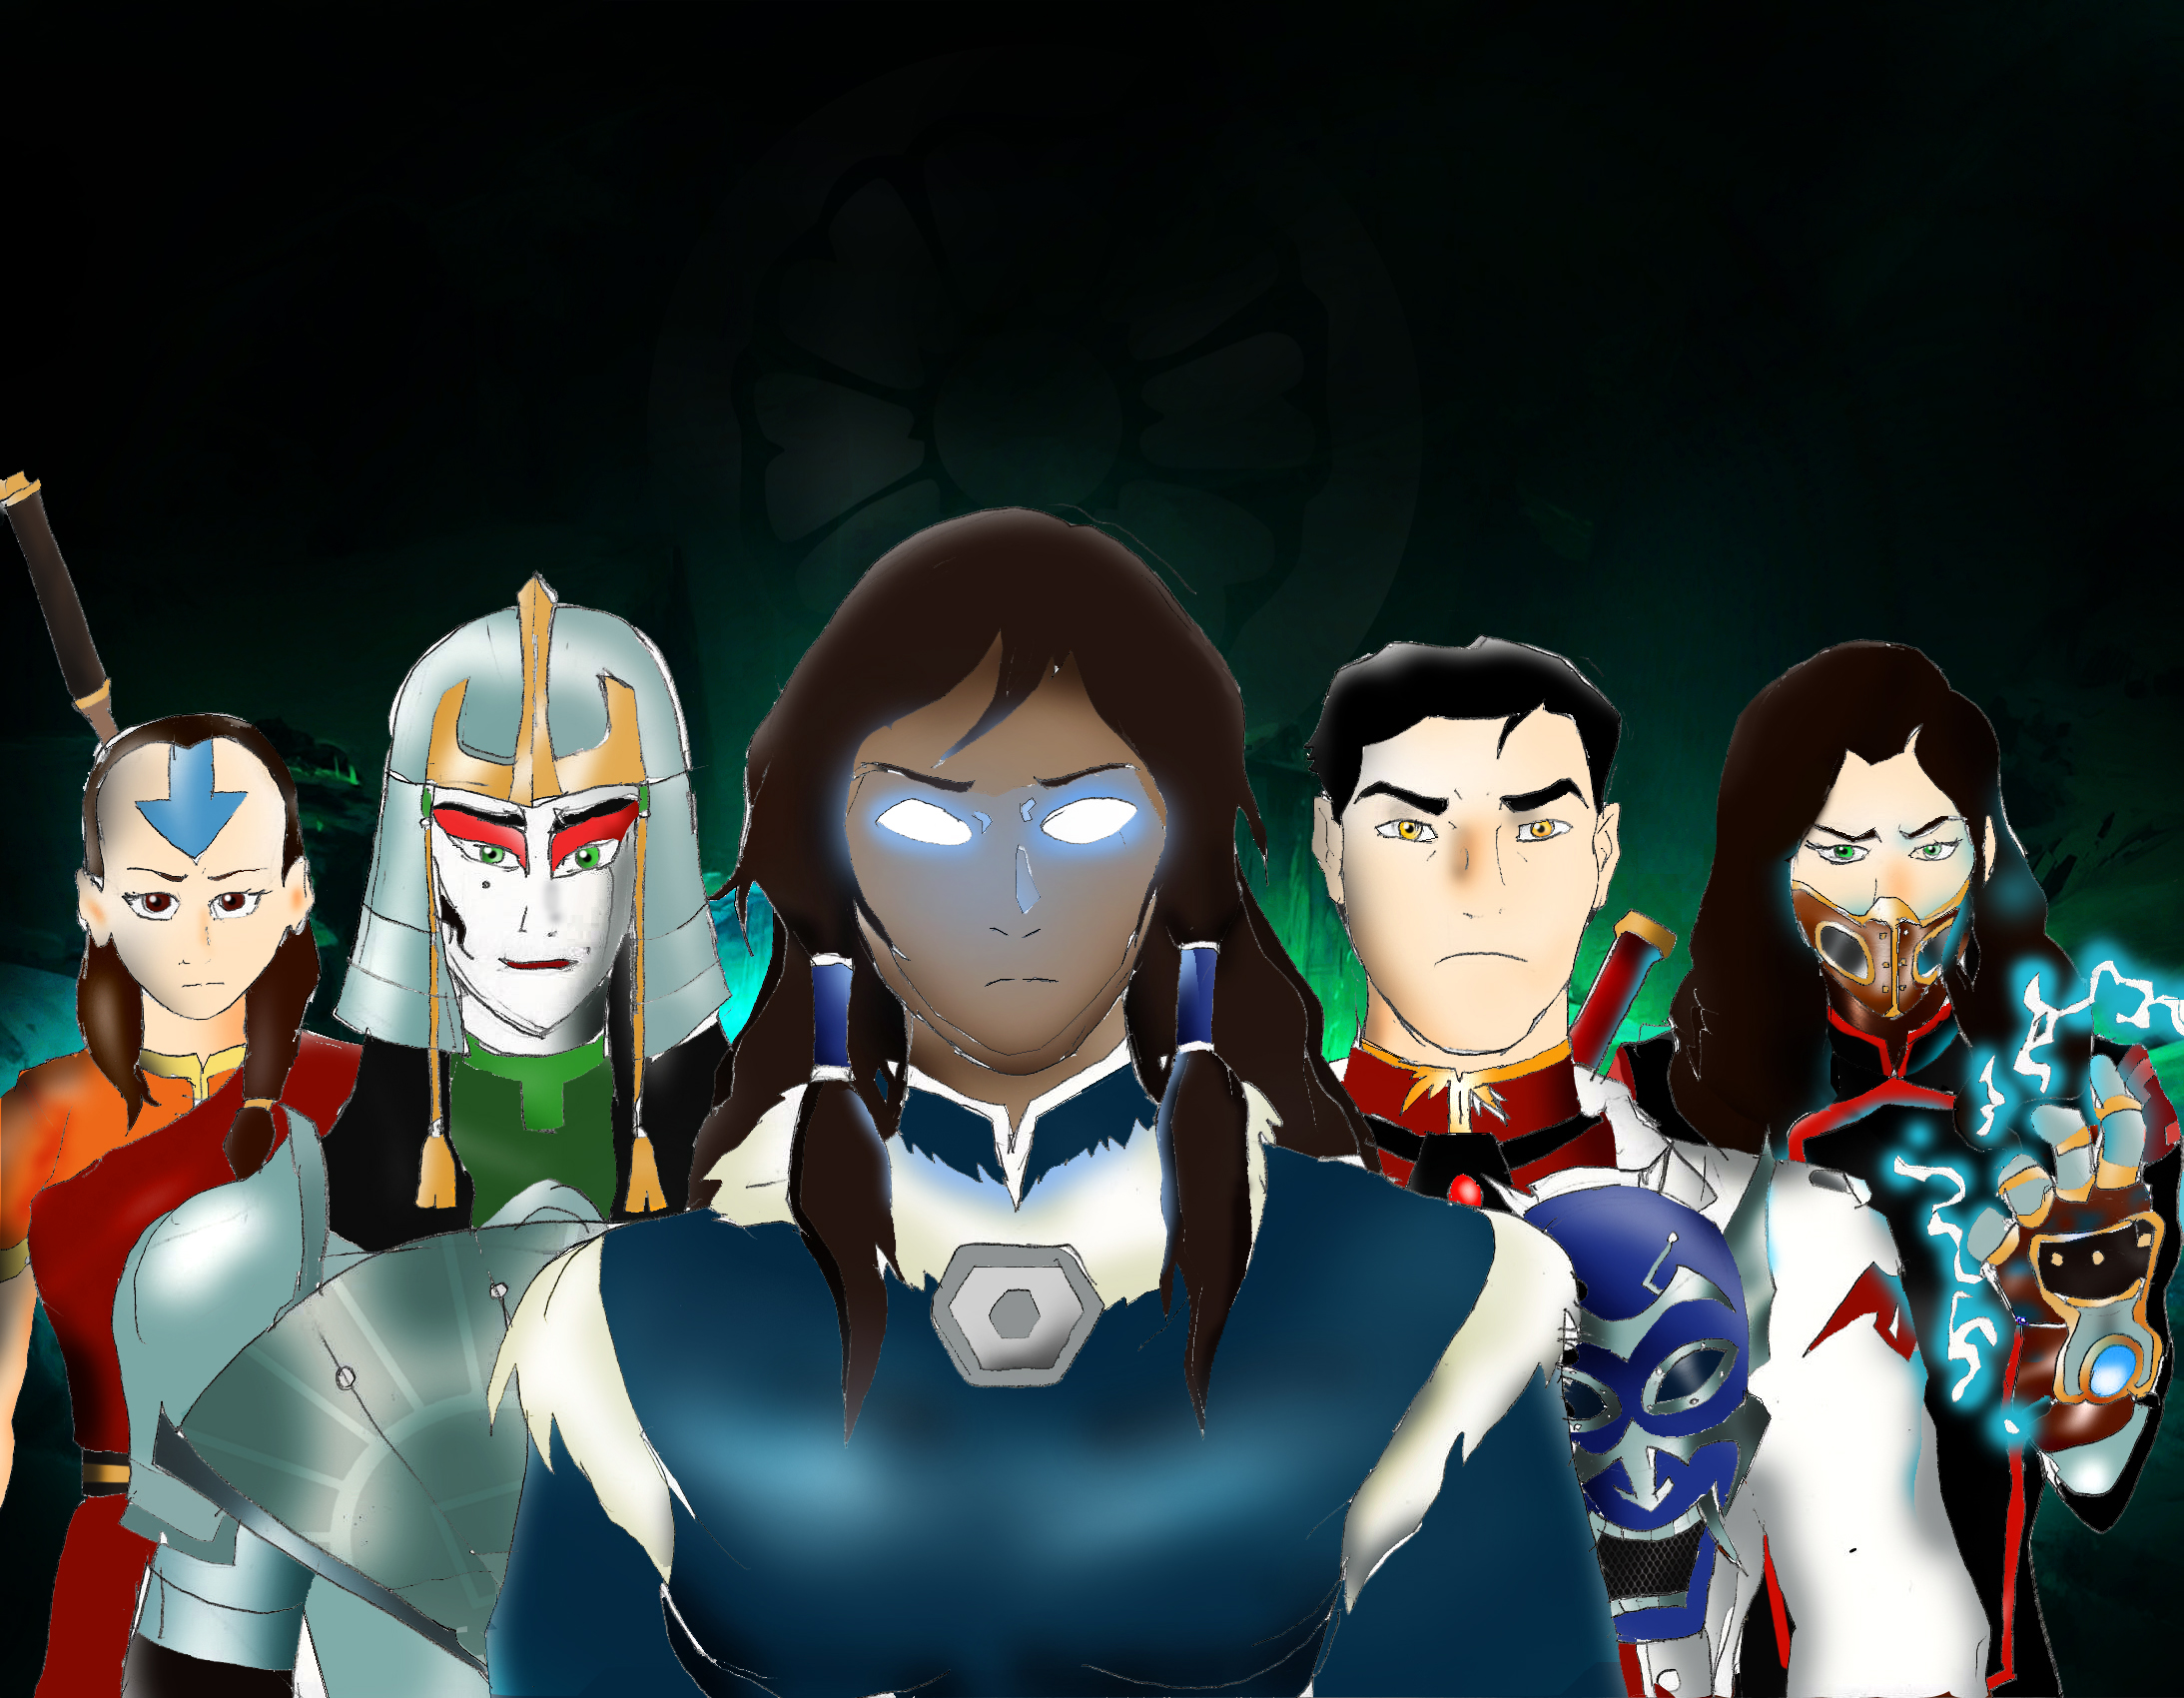 The New Order Of The White Lotus Avatar The Last Airbender The Legend Of Korra Know Your Meme